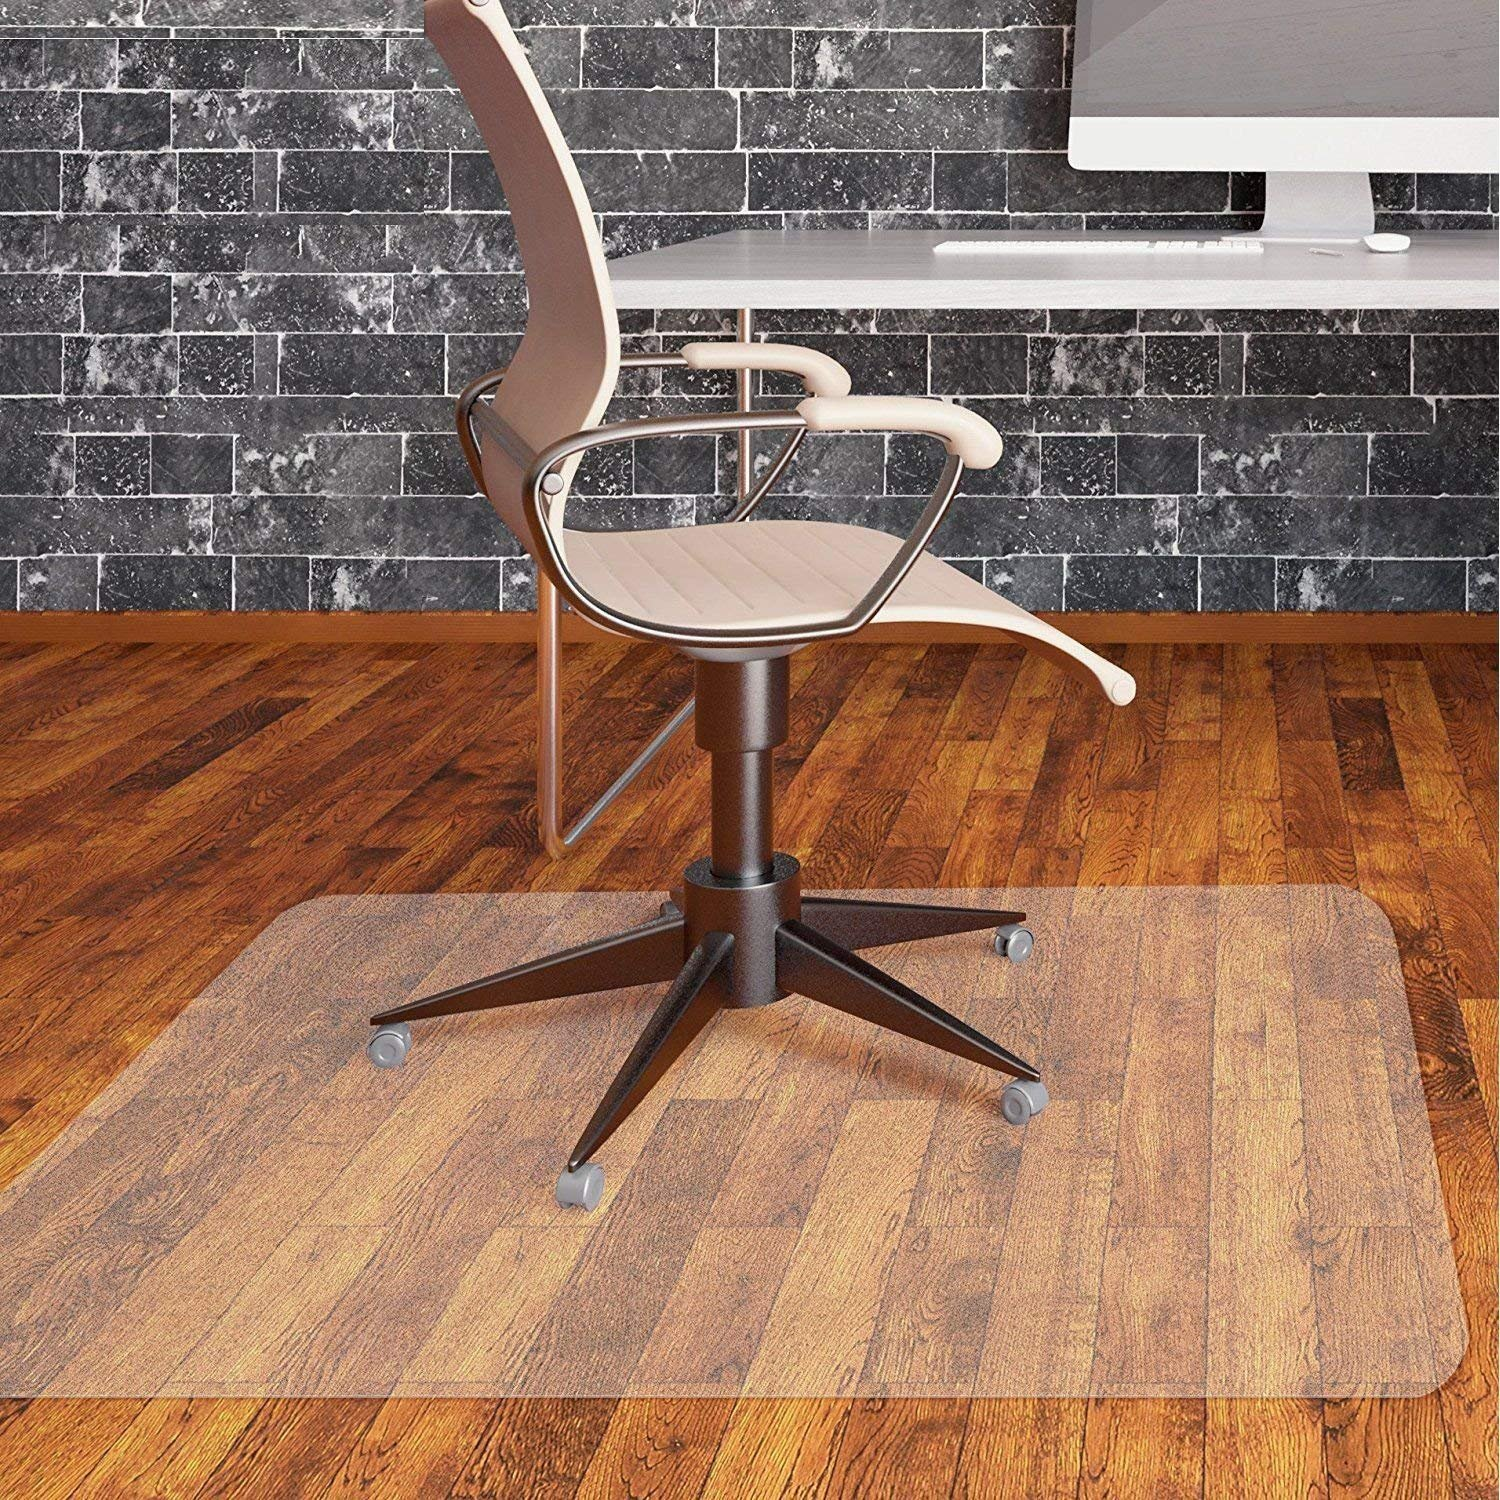 Office Chair Mat for Hardwood Floor by Somolux Computer Desk Swivel Chair PVC Plastic Mat Clear Oversized and Rolling Delivery, Protect Hard Flooring in Home and Office 48 x 36 inches Rectangle by SOMOLUX